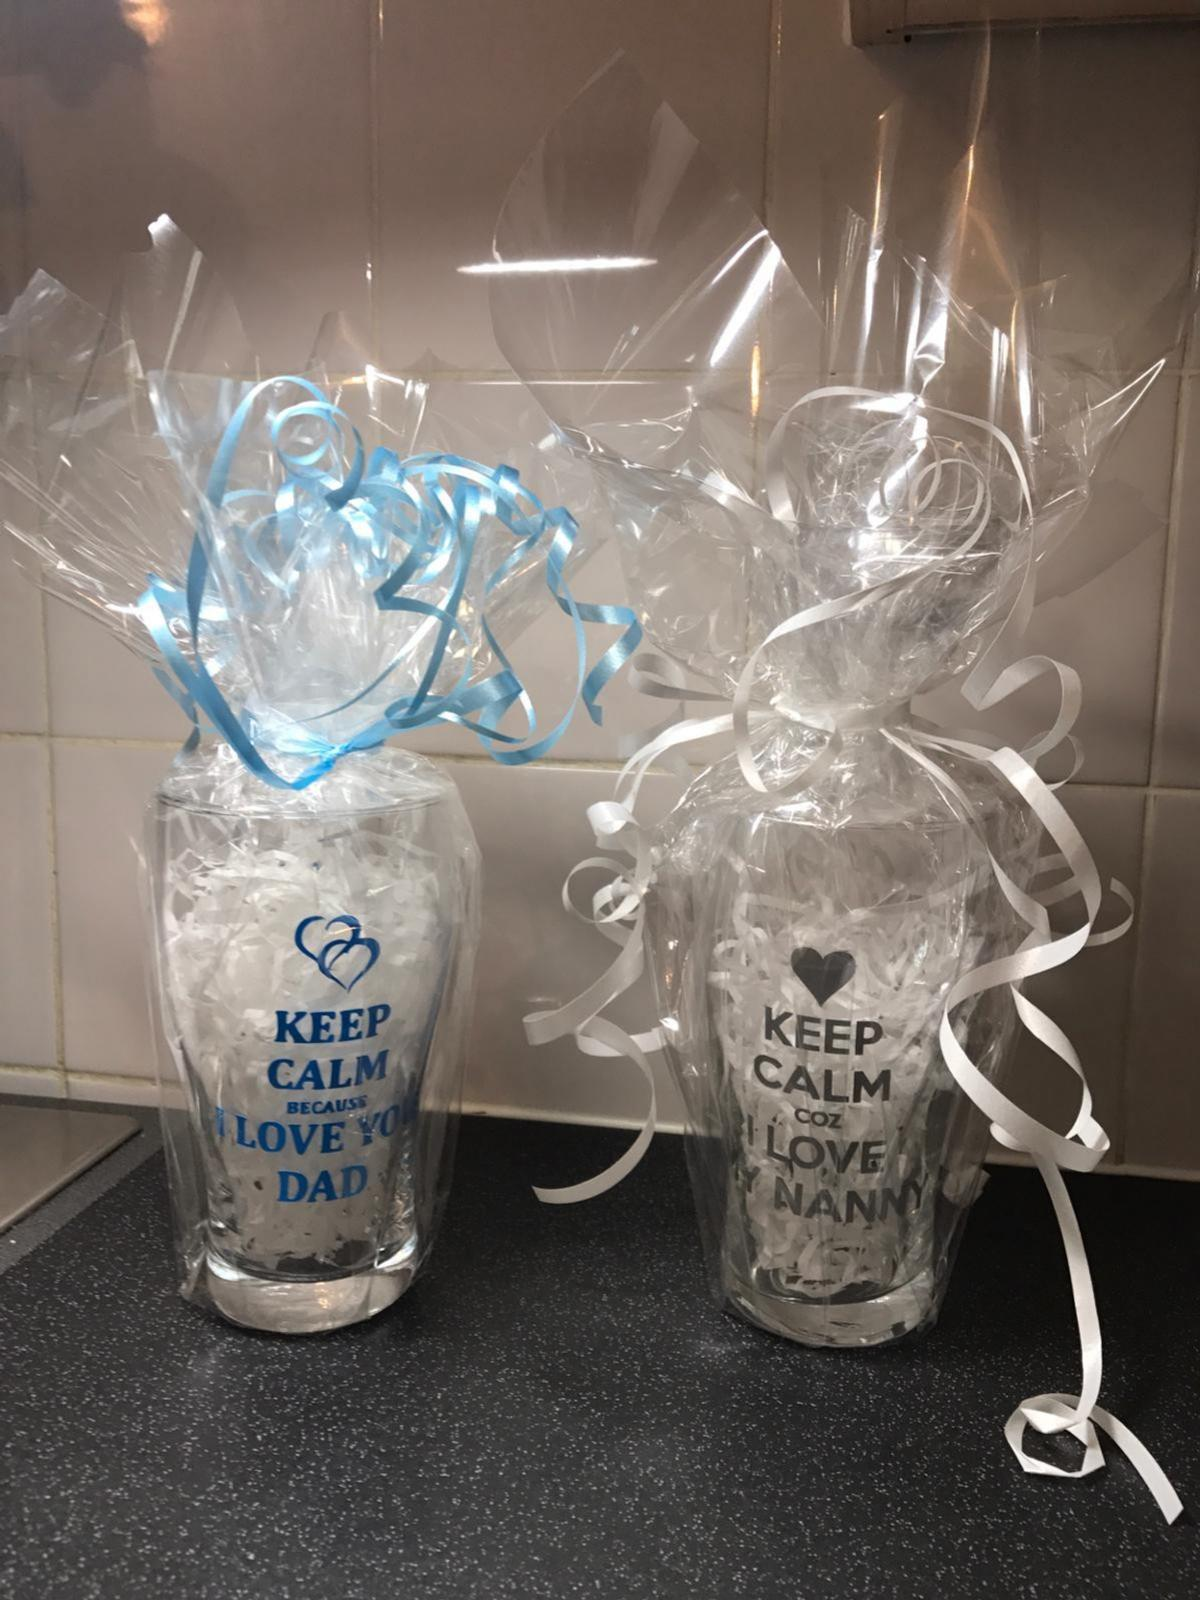 we also do personalised item for Brides to be ,baby showers ,births . prices are different varies starting from £5 and all gift wrap .